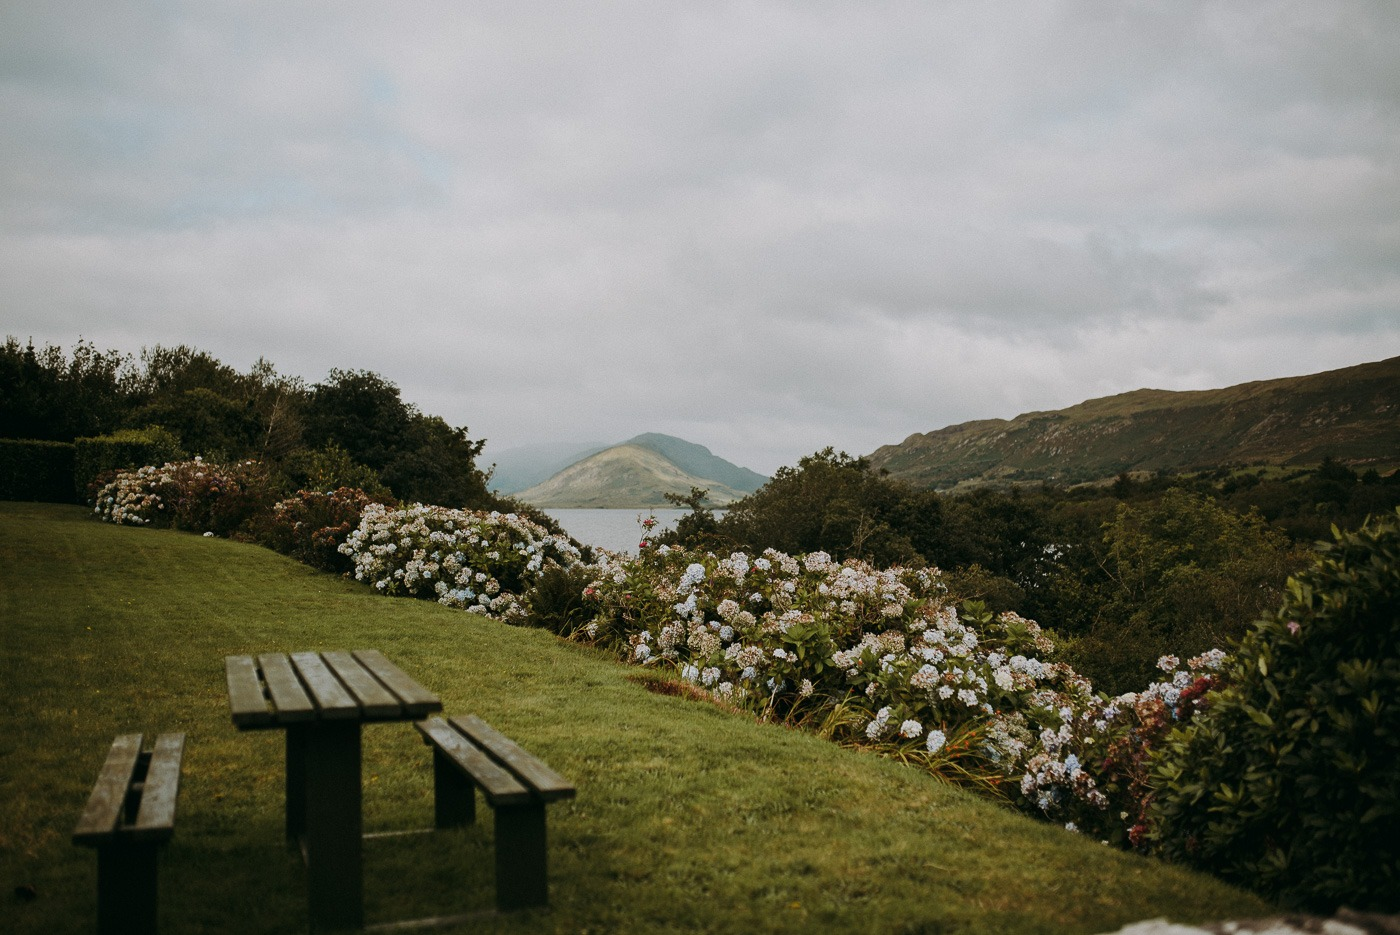 A wooden bench sitting on top of a grass covered field